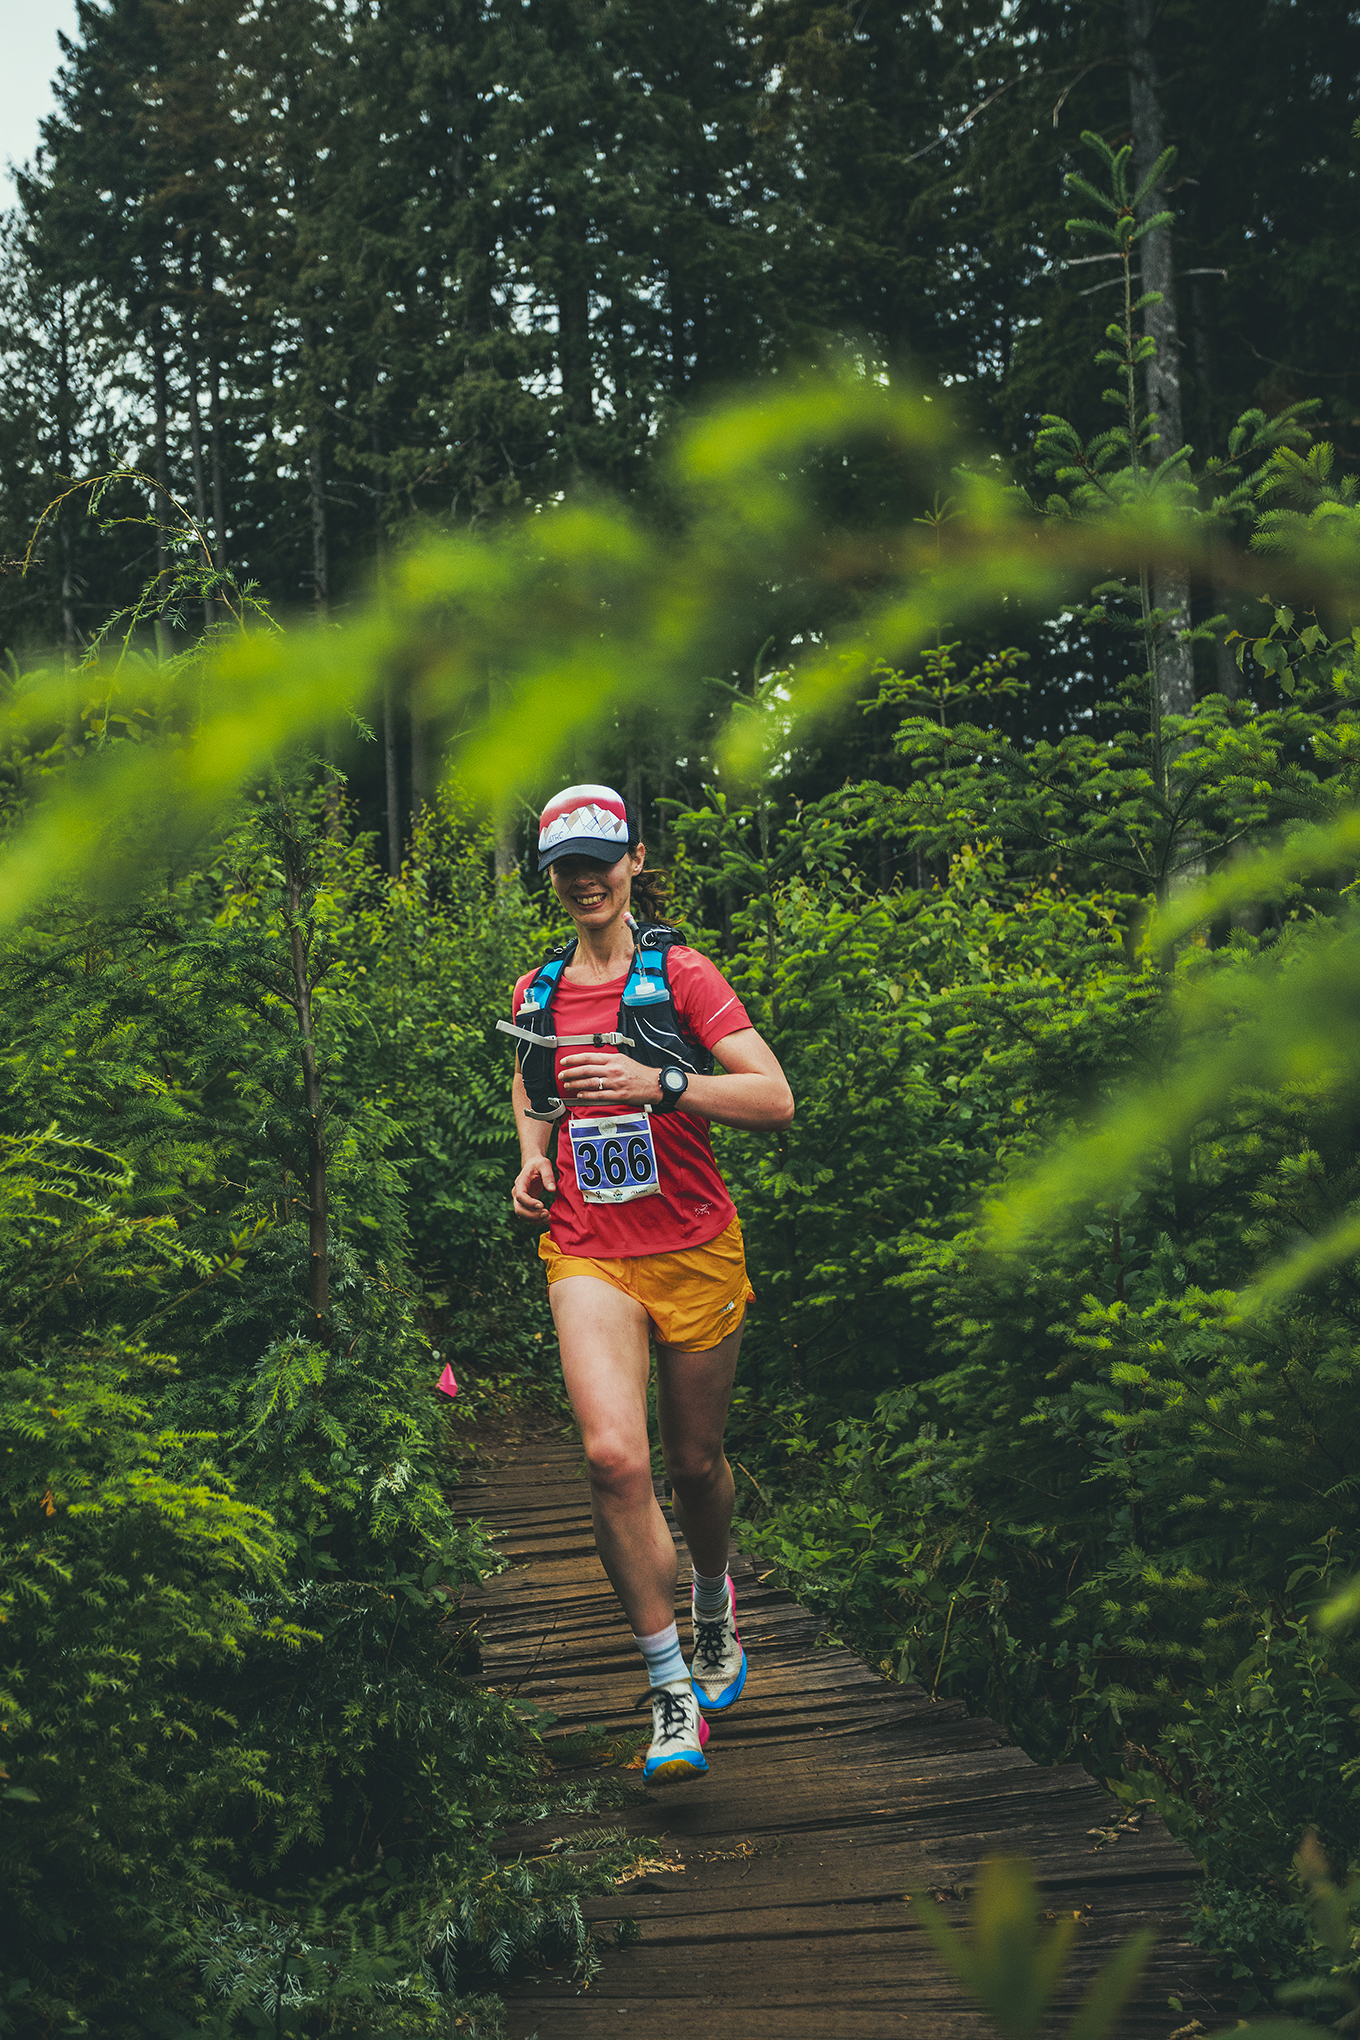 Fraser Valley Trail Races - Bear Mountain - IMG_1444 by Brice Ferre Studio - Vancouver Portrait Adventure and Athlete Photographer.jpg